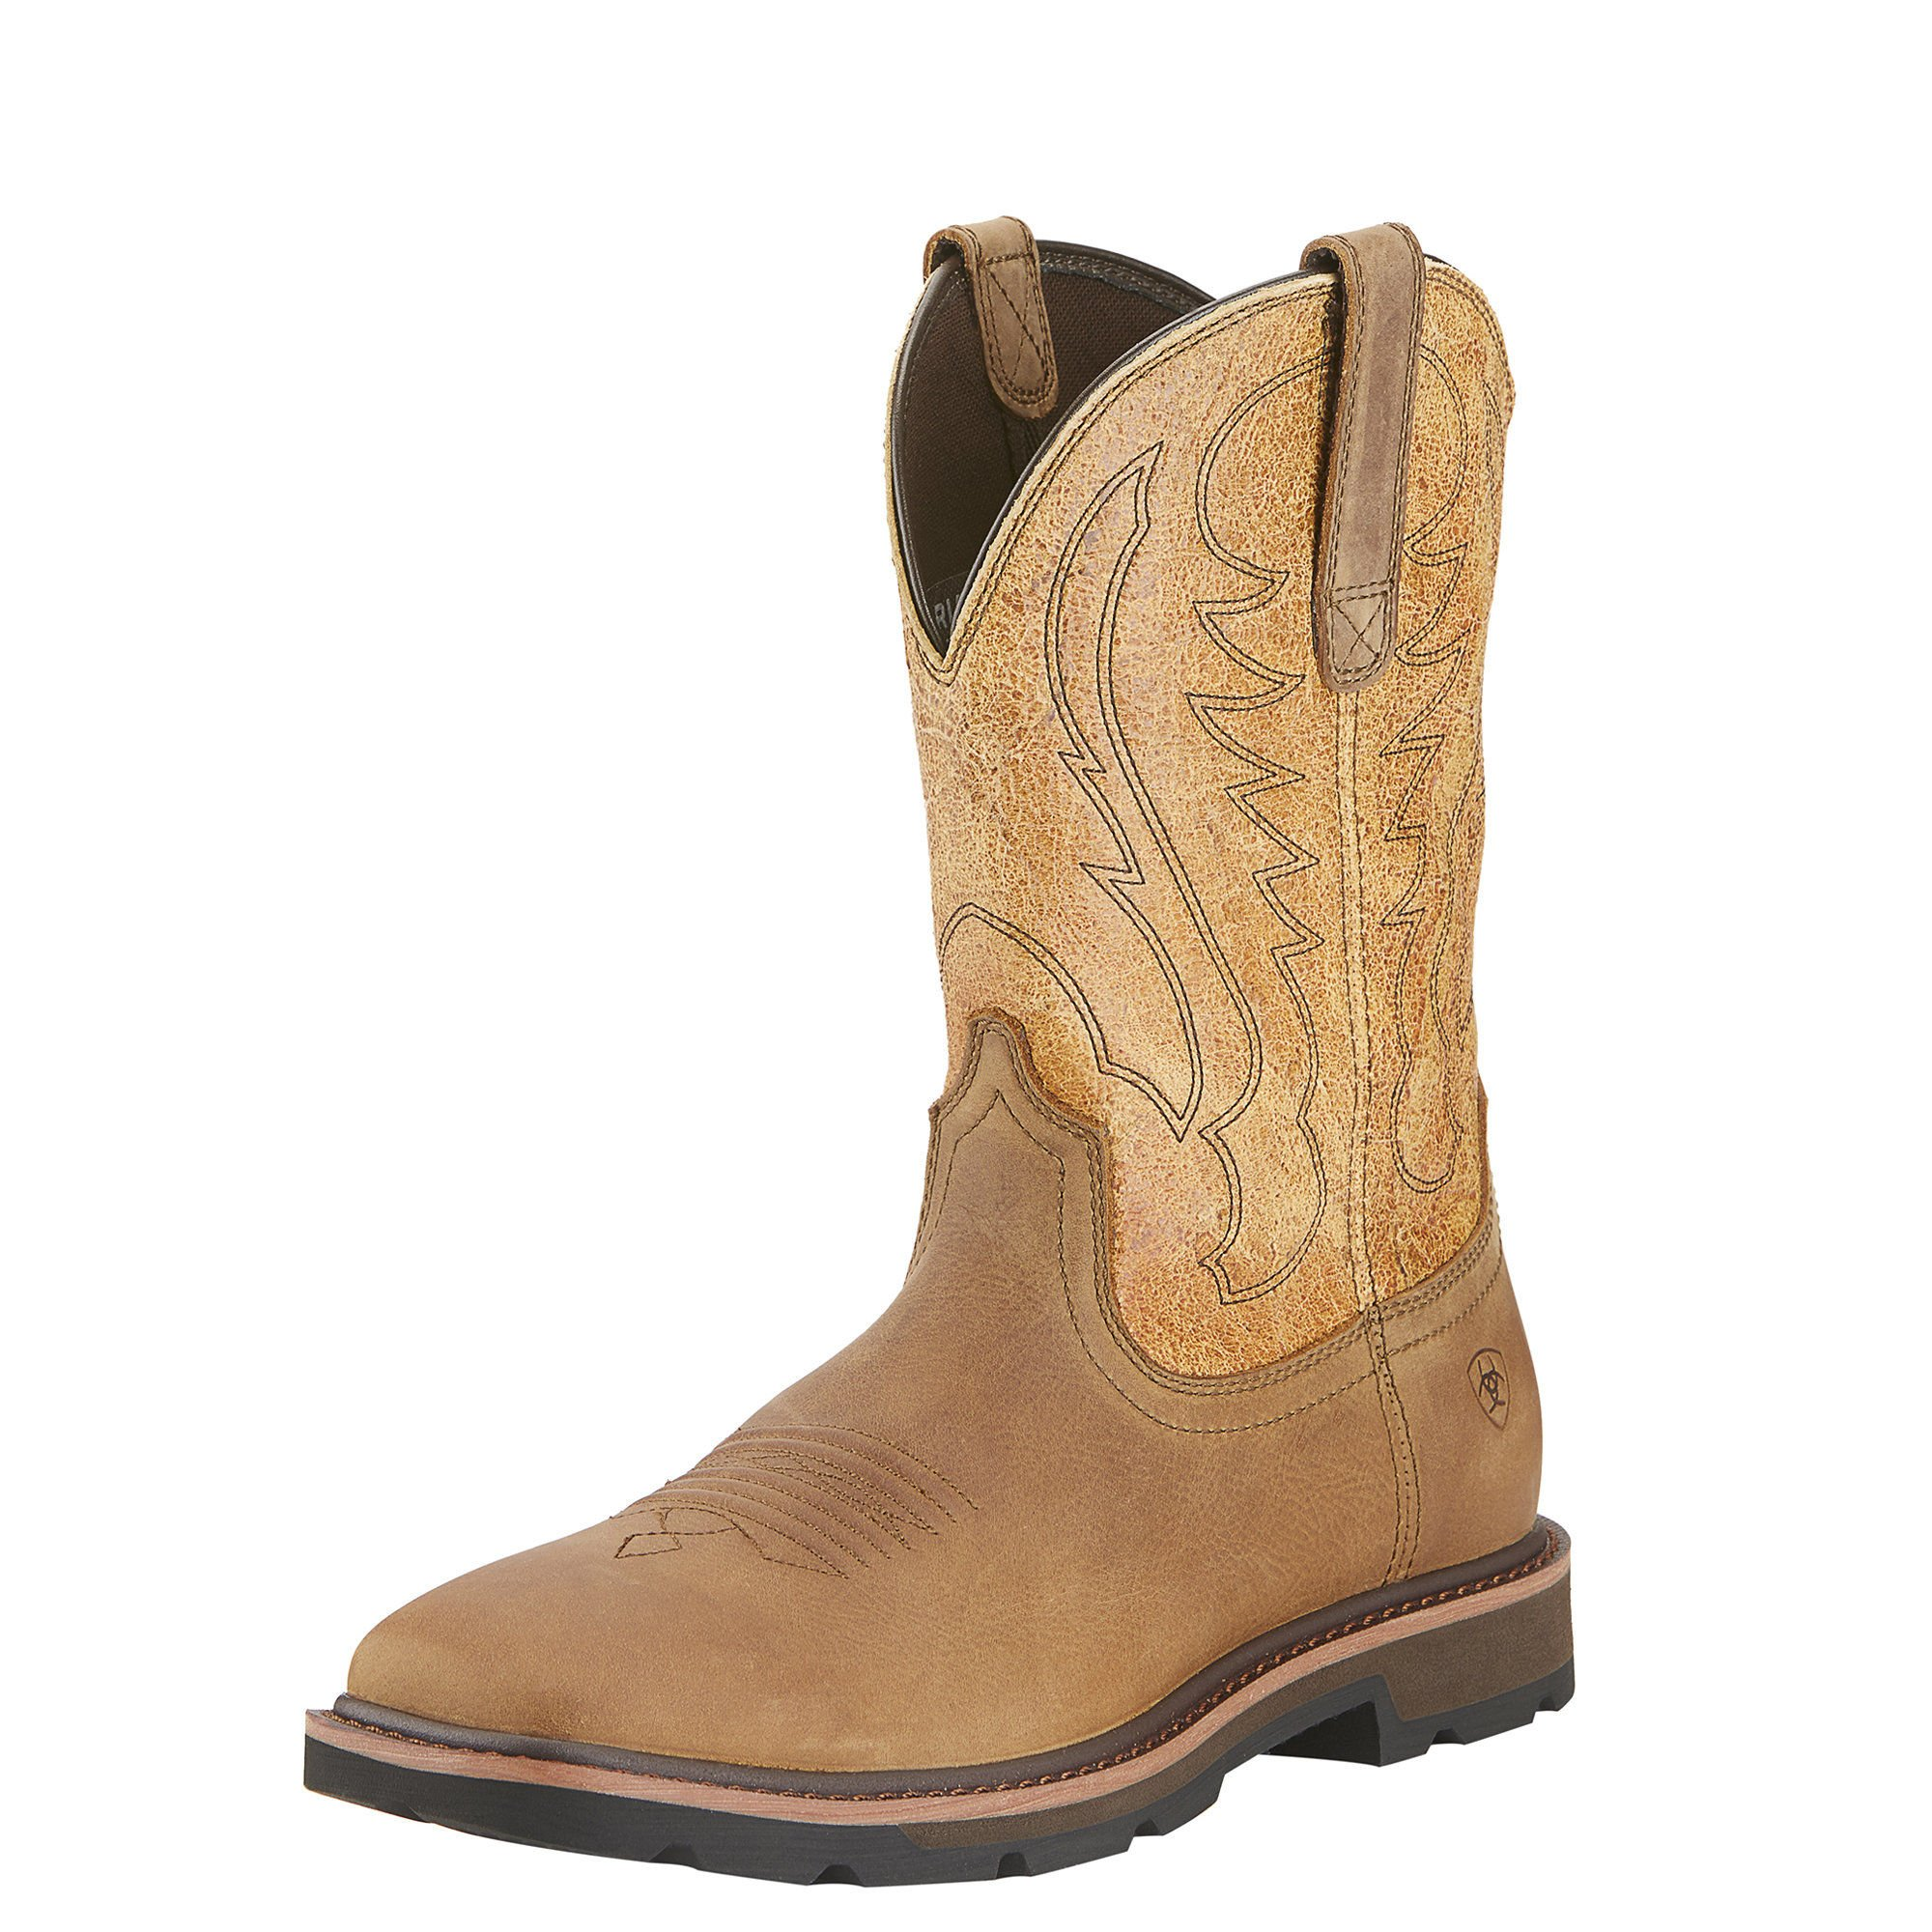 Ariat Men's Groundbreaker Wide Square Toe Work Boot, Dusted Brown/Sand Crackle, 13 M US